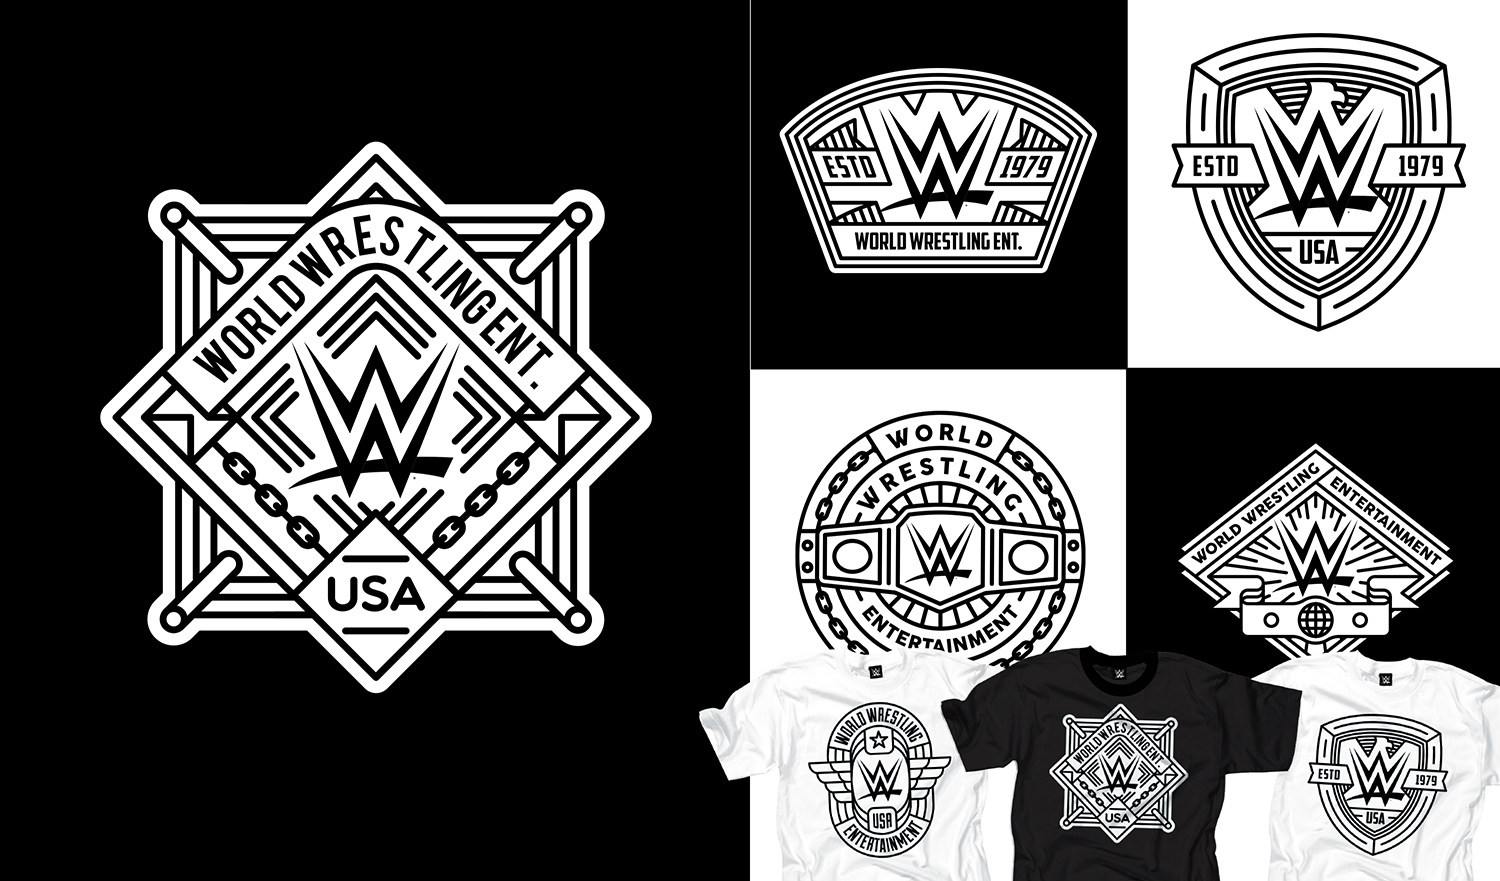 wwe_apparel7.jpg